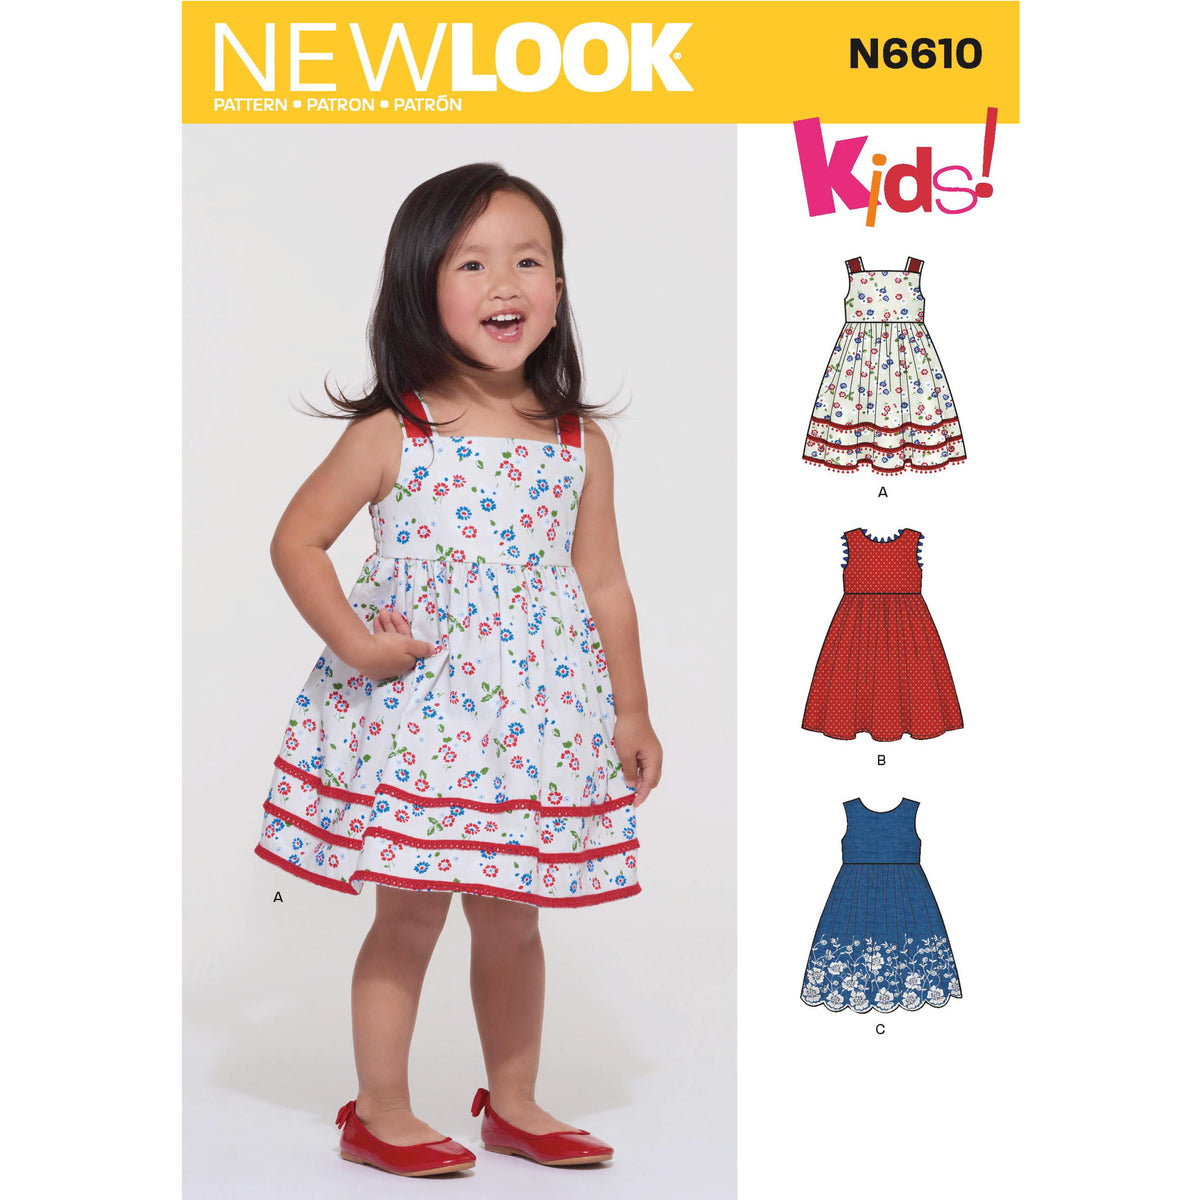 6610 New Look Sewing Pattern N6610 Toddlers' Dress